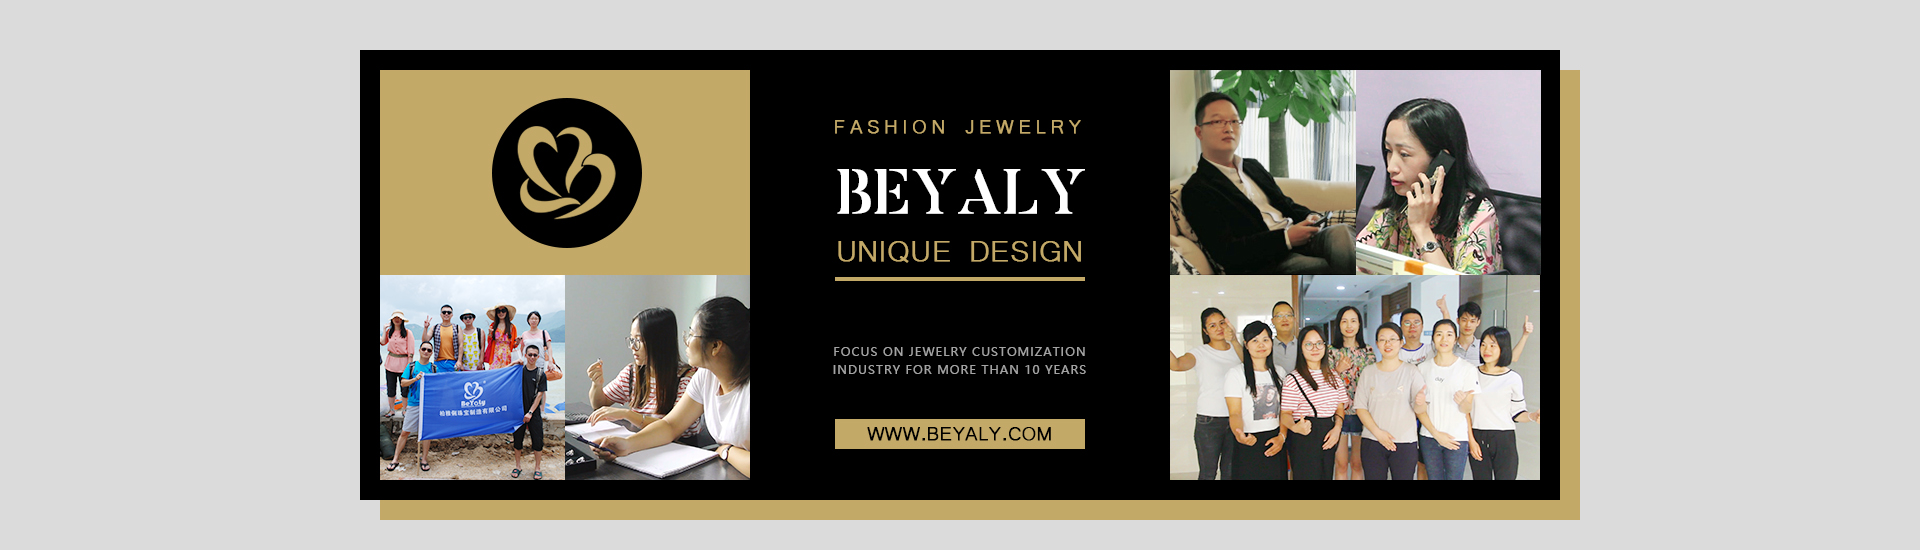 product-BEYALY-Trendy Fashion Stainless Steel Simple Adjustable Cross Bracelet-img-4